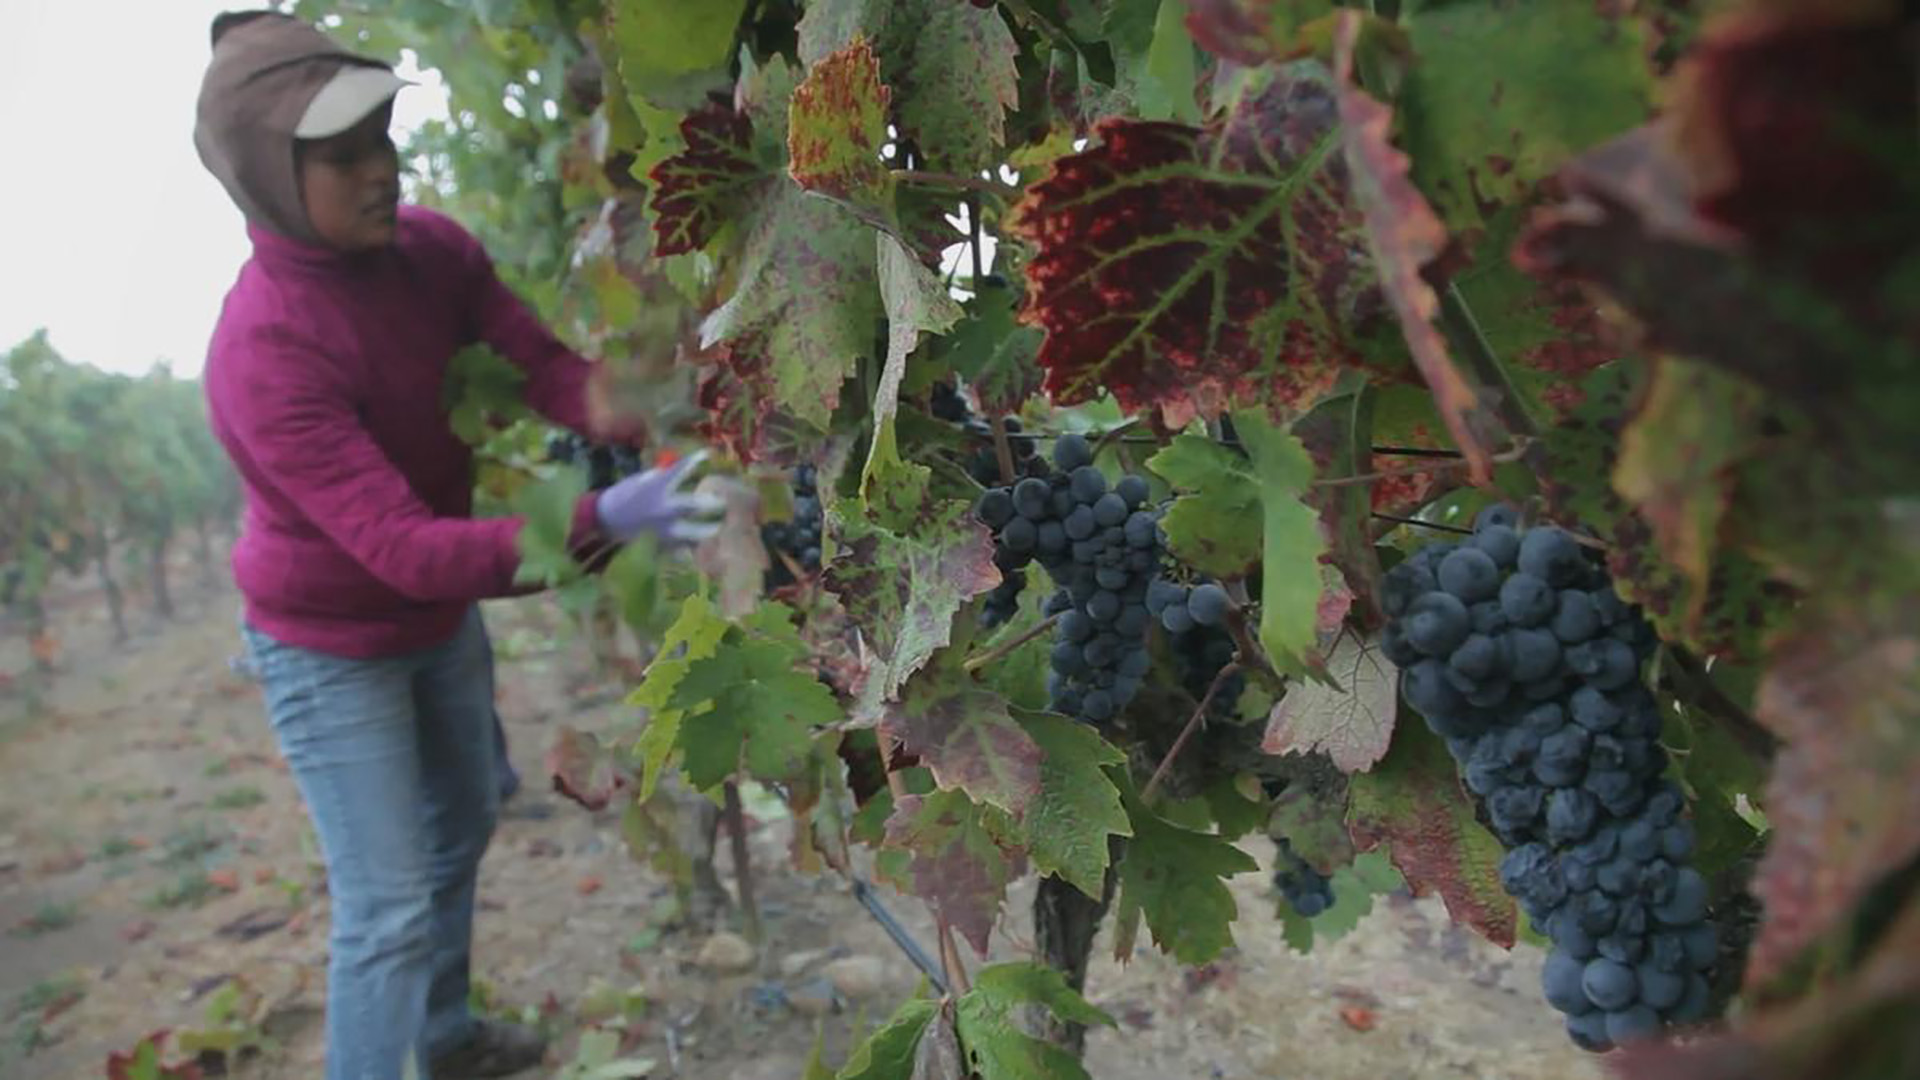 A female farmworker harvests grapes.